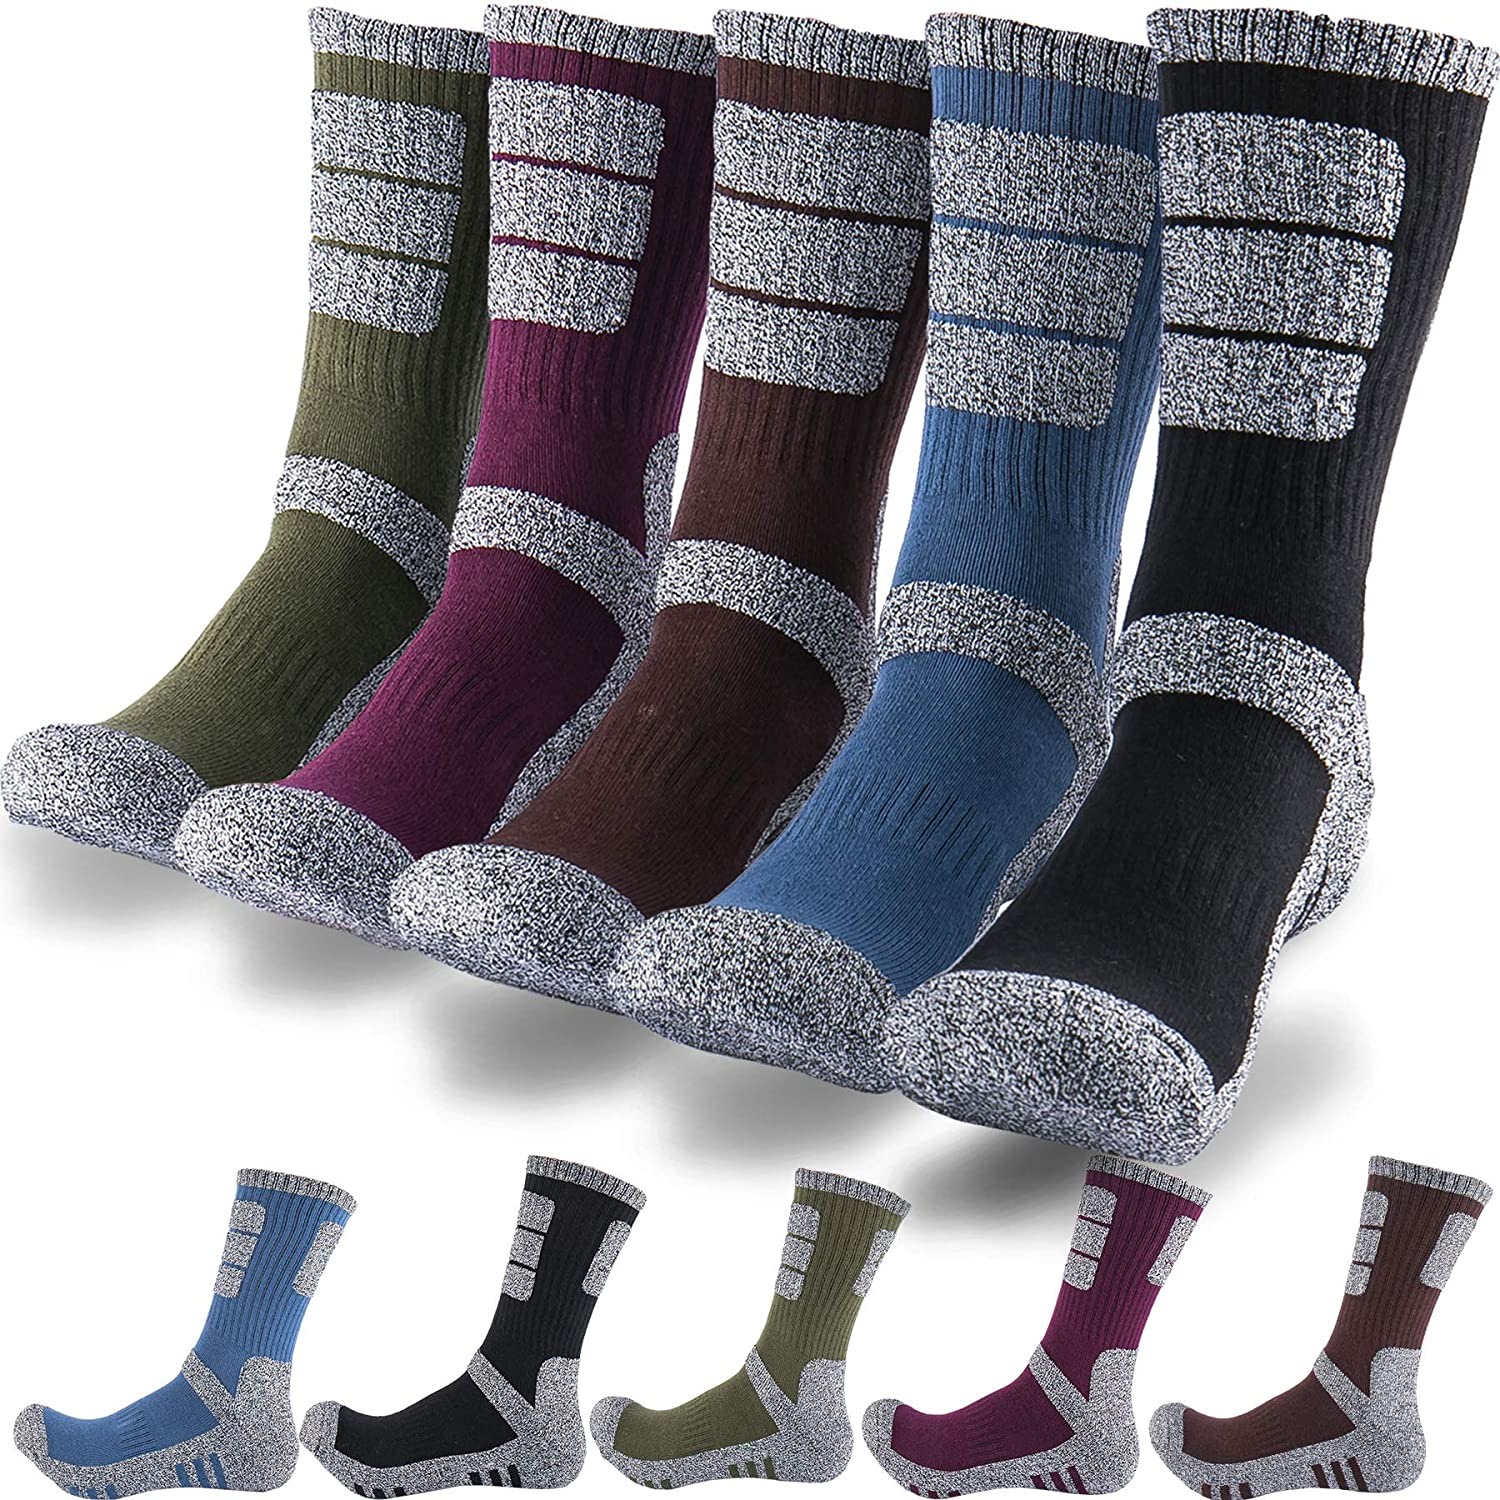 DEARMY 5Pack of Mens Multi Performance Cushioned Athletics Hiking Crew Socks | Moisture Wicking | Year Round